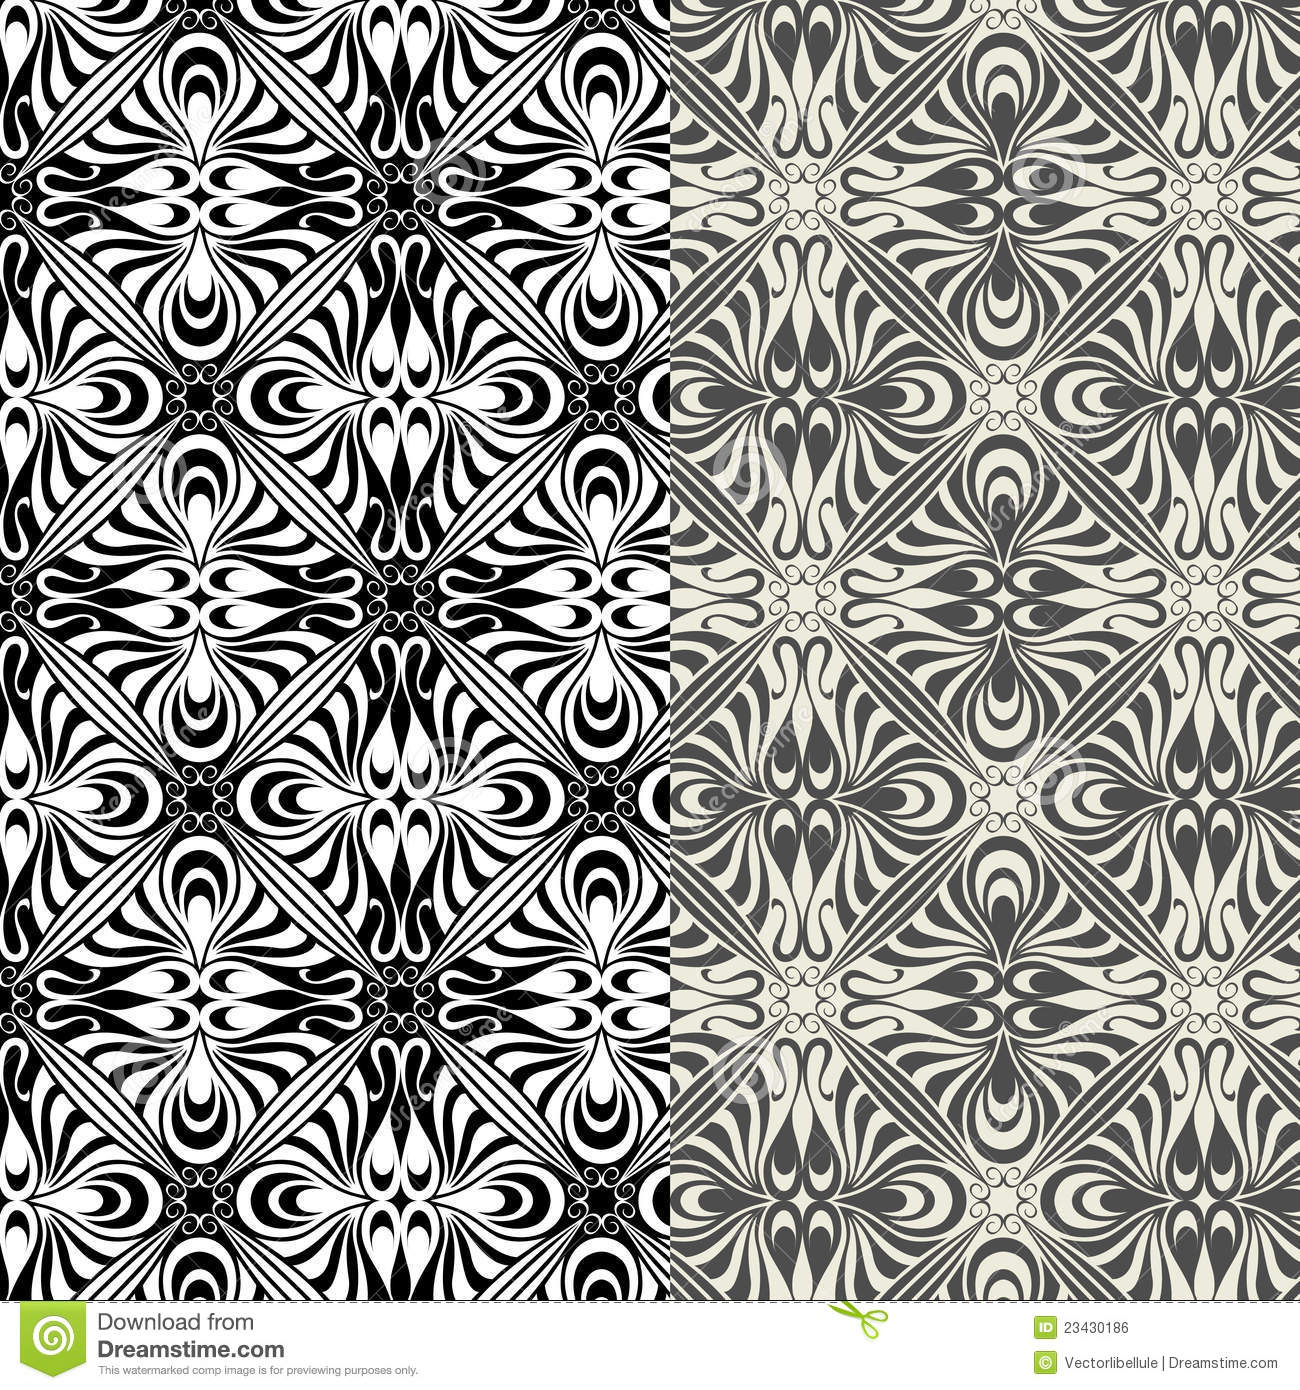 Gatsby Theme Wallpaper in addition Vanitas Stilleven Met Zelfportret further 11 as well Royalty Free Stock Image Set Art Nouveau Patterns Image23430186 as well Pared De Ladrillo Blanco De Textura Foto Gratis. on art deco wallpaper